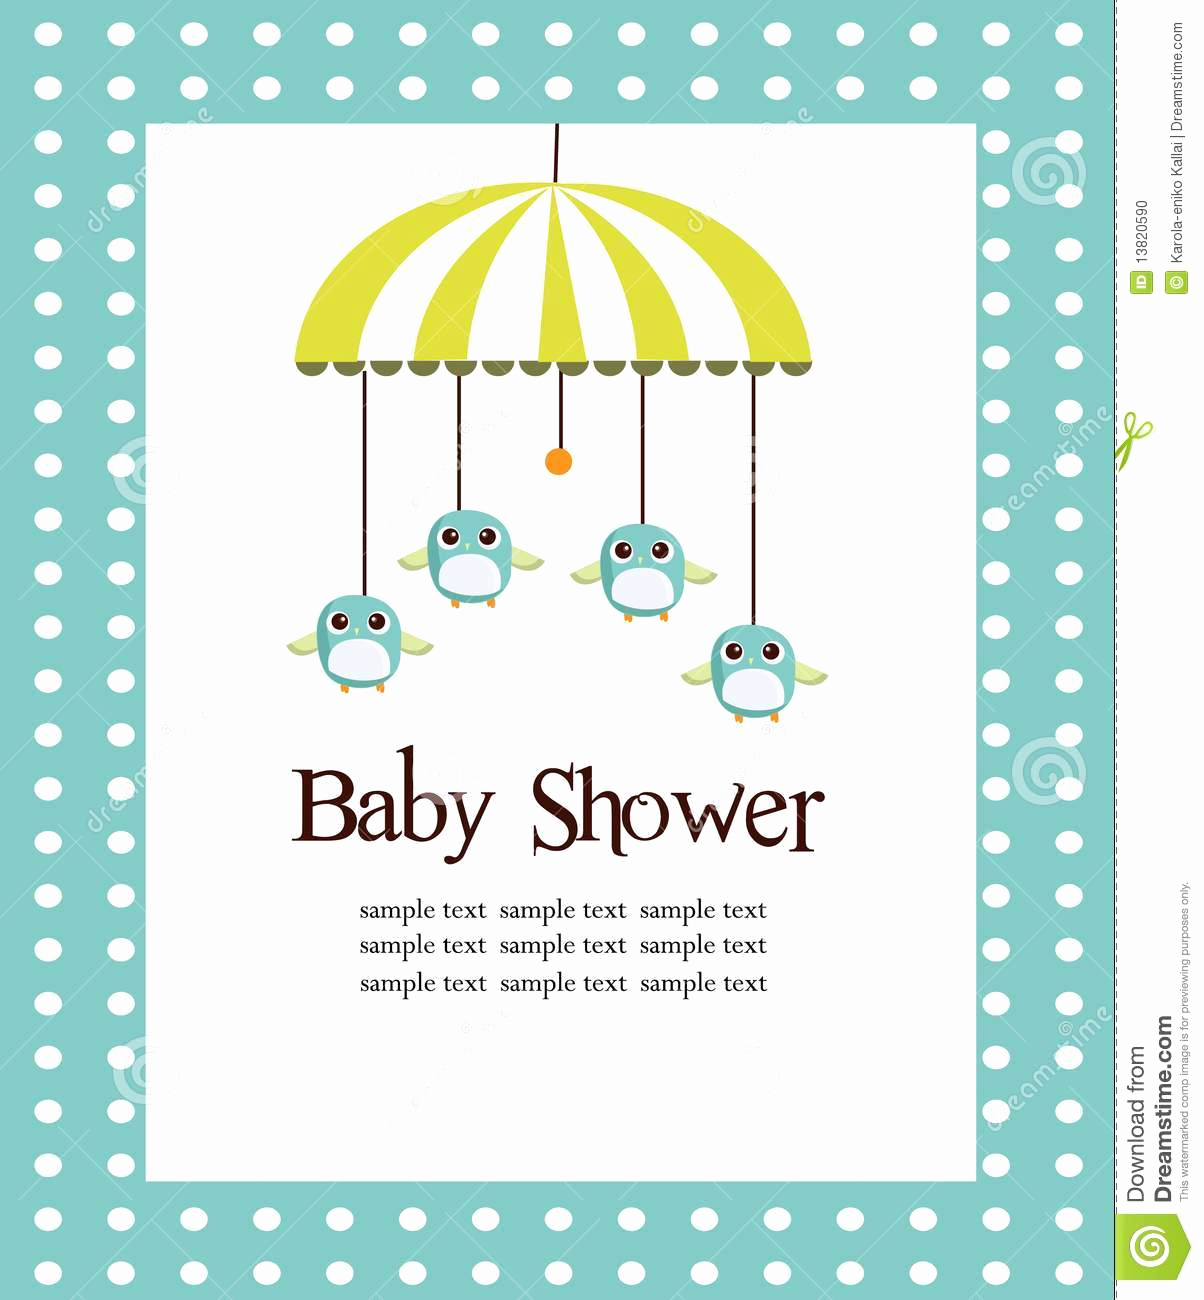 Baby Shower Invitation Card Ideas New [45 ] Boy Baby Shower Wallpaper On Wallpapersafari